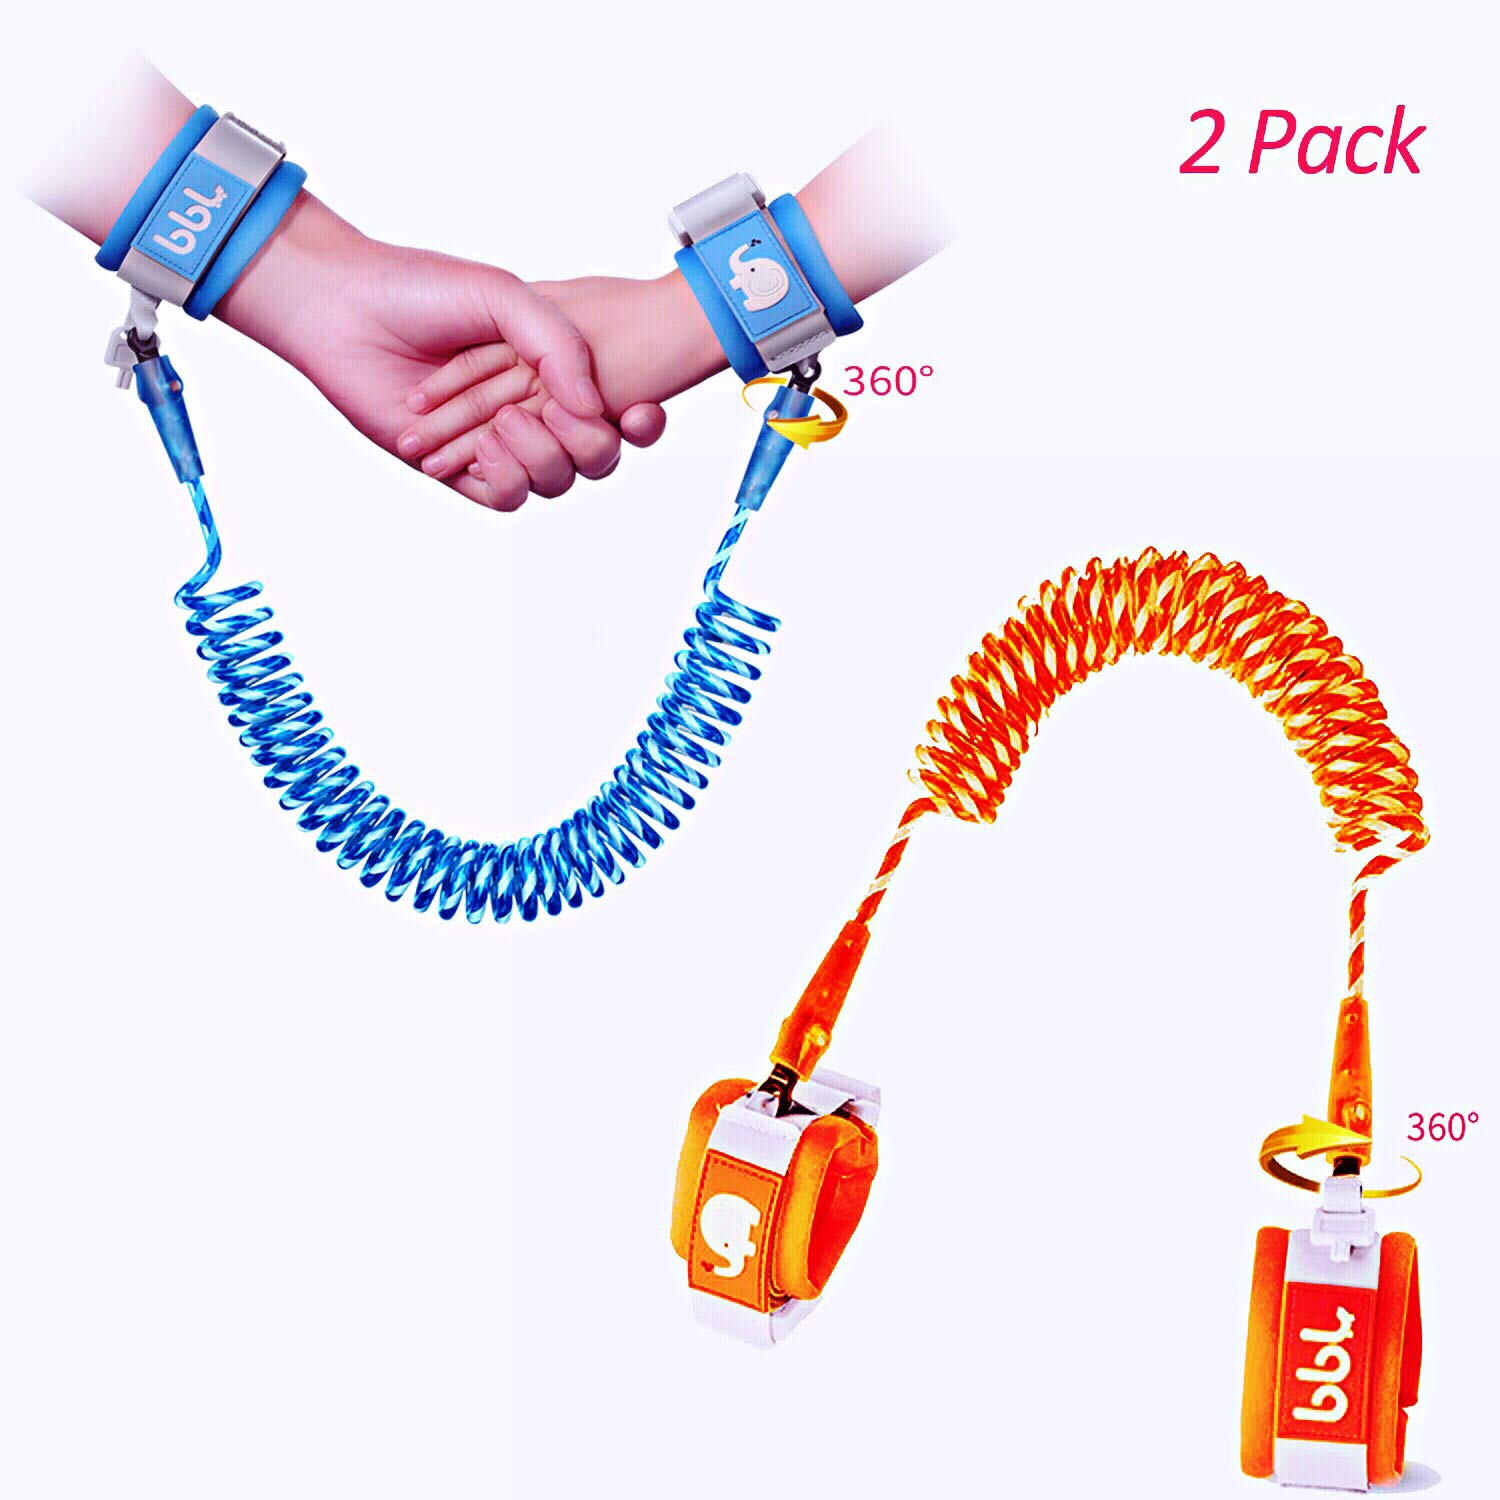 Babies 6.56 Feet Anti Lost Rope Walking Harness with Key Lock Reflective for Kids Anti Lost Wrist Link,Toddles Safety Wrist Leash Blue+Orange